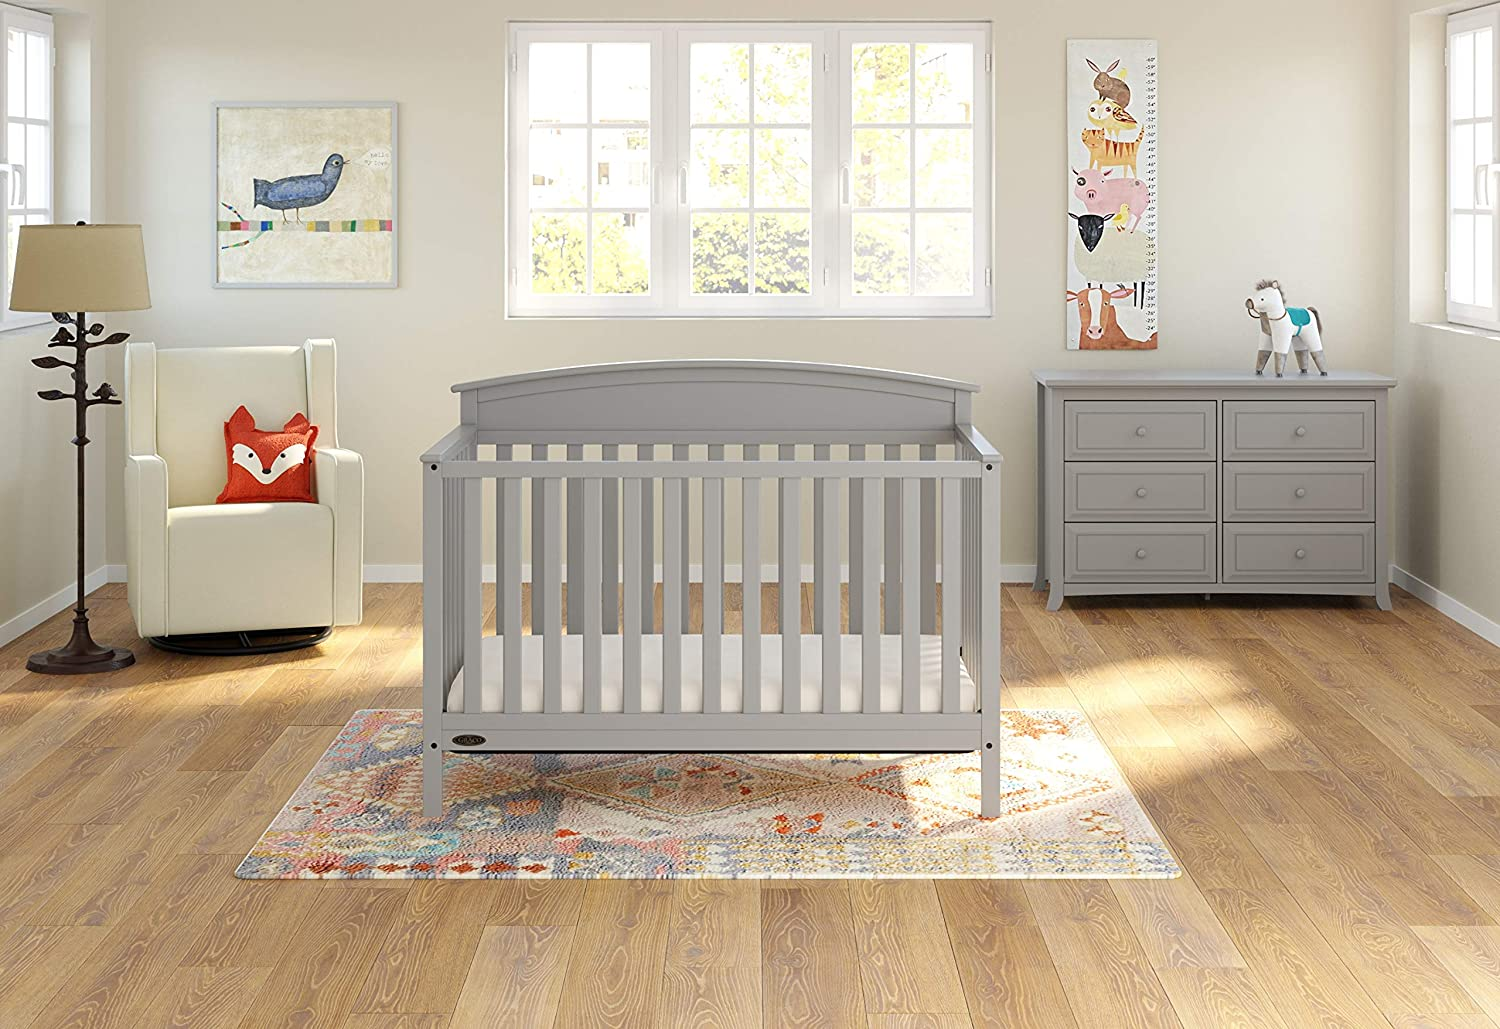 Easily Converts to Toddler Bed, Daybed or Full-Size Bed with Headboard